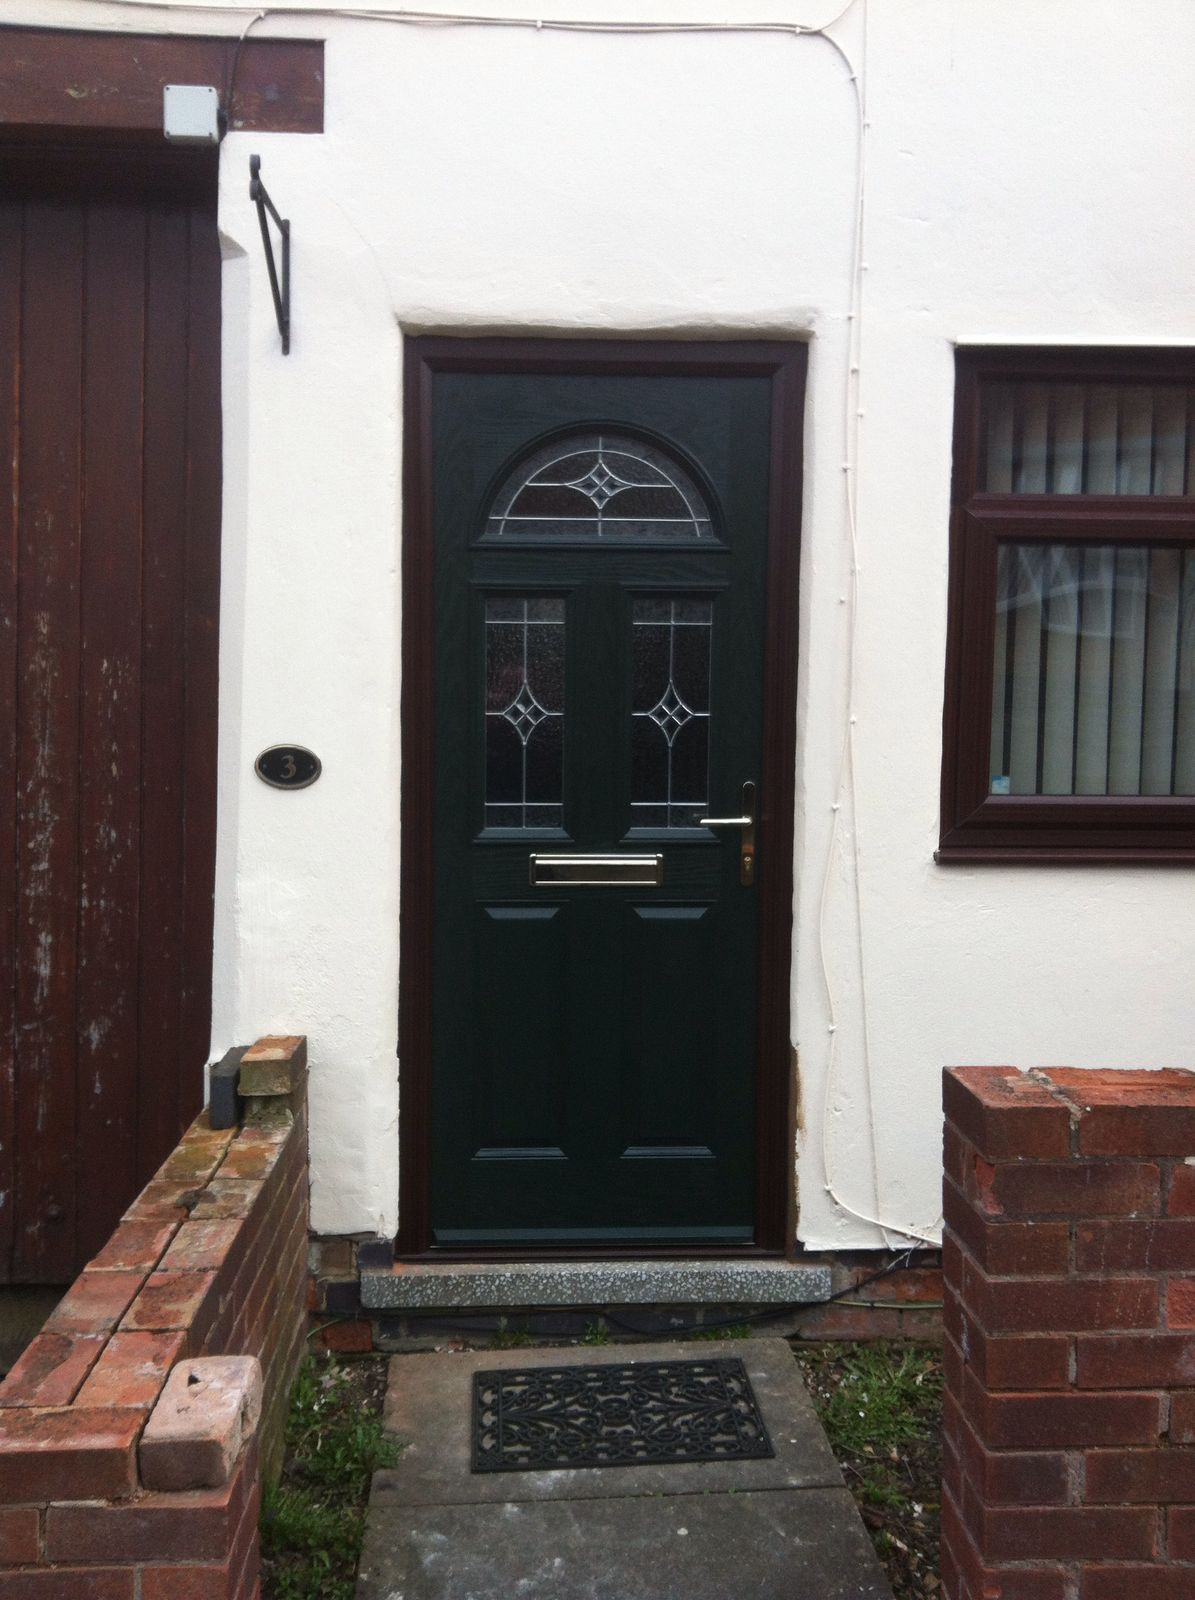 The Nottingham Window Company supply and fit high quality double glazing Windows Doors Conservatories Porches and Orangeries in Nottingham. & A Classic Green +Door Stop International Composite Door With Zinc ... pezcame.com